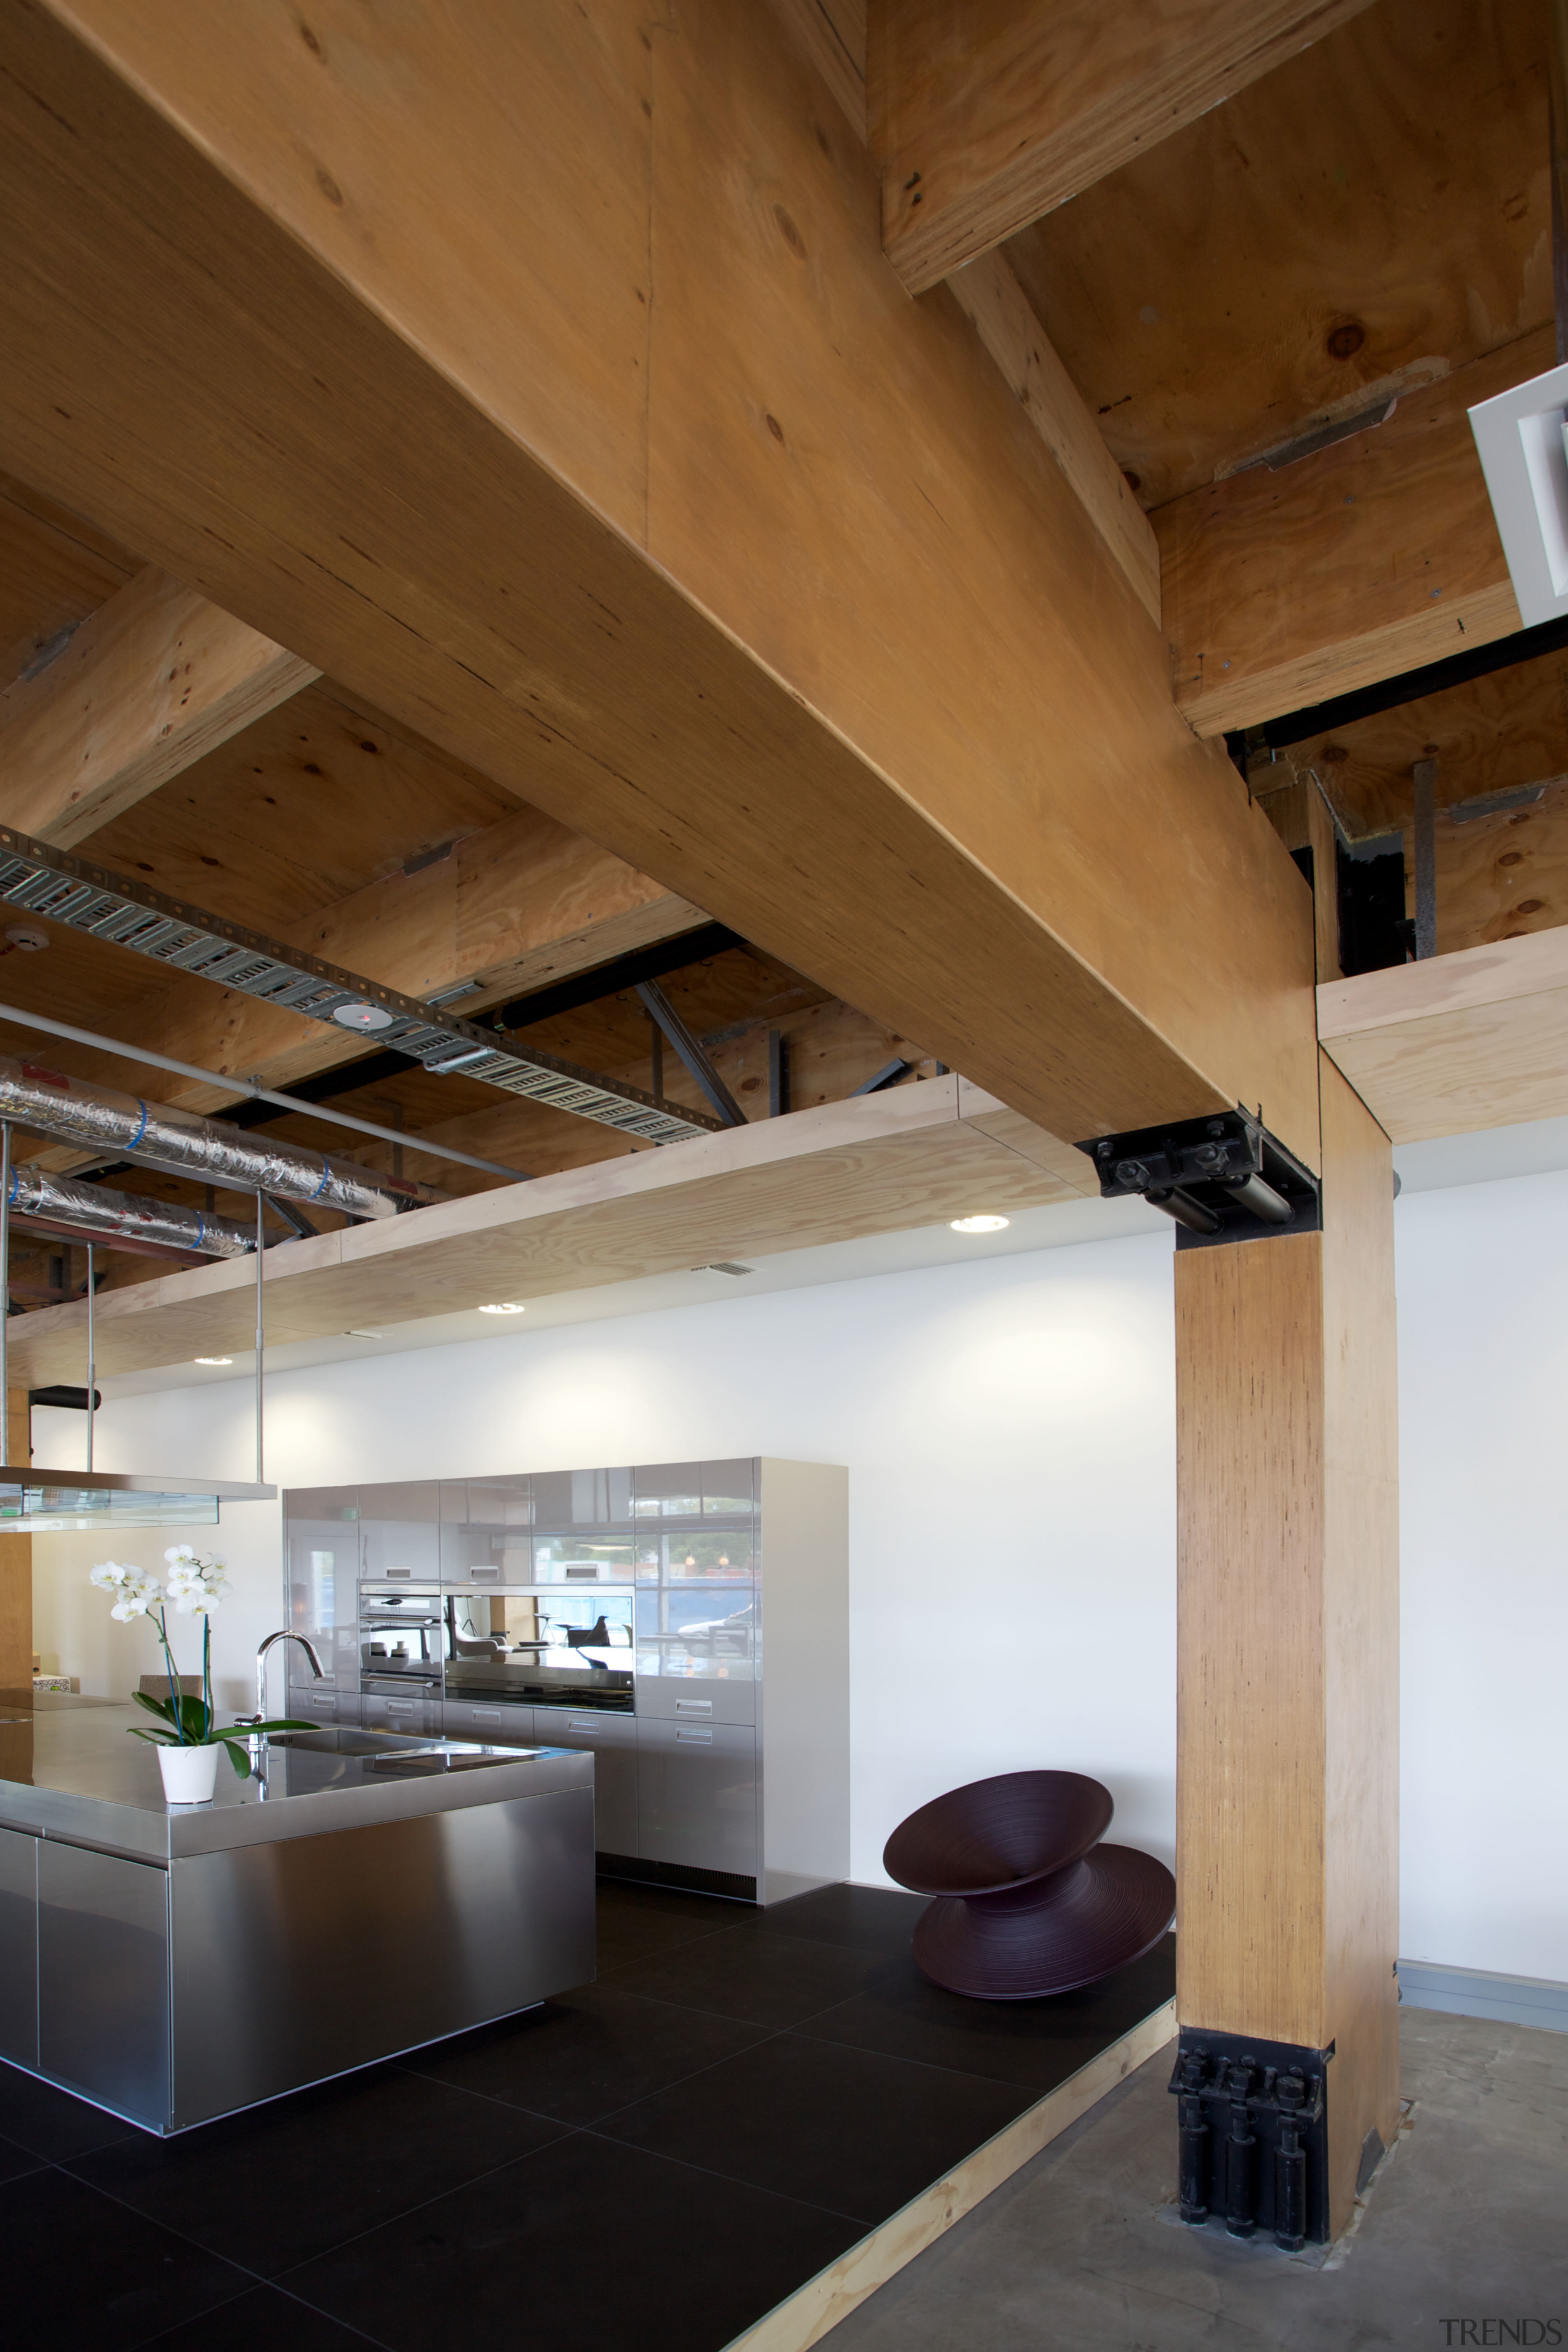 New seismic structural systems technology is transforming the architecture, beam, ceiling, daylighting, house, interior design, loft, wood, brown